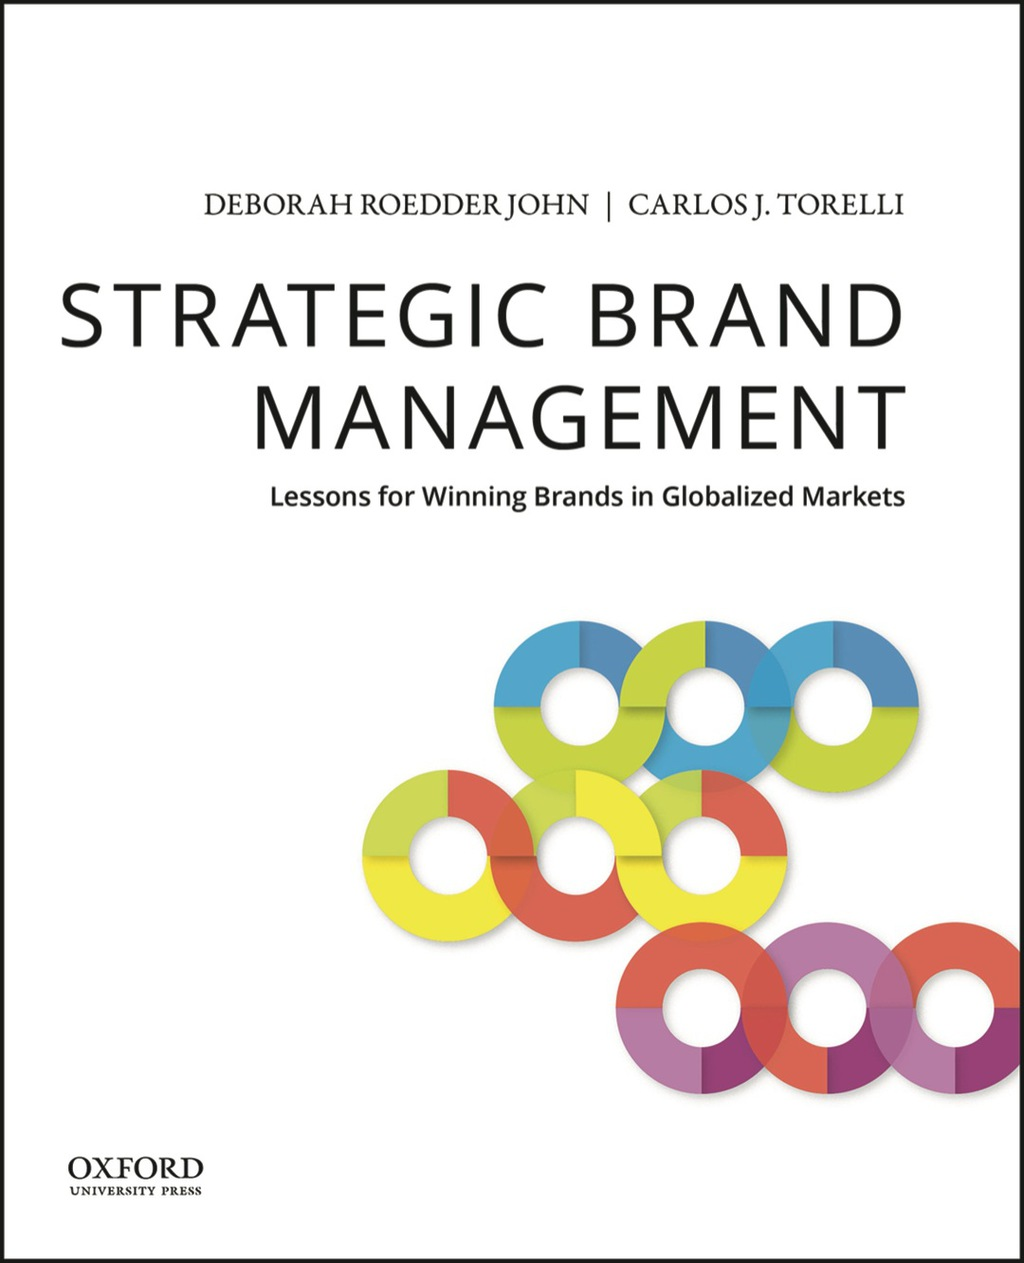 a strategic brand management Study flashcards on strategic brand management 2 at cramcom quickly memorize the terms, phrases and much more cramcom makes it easy to get the grade you want.